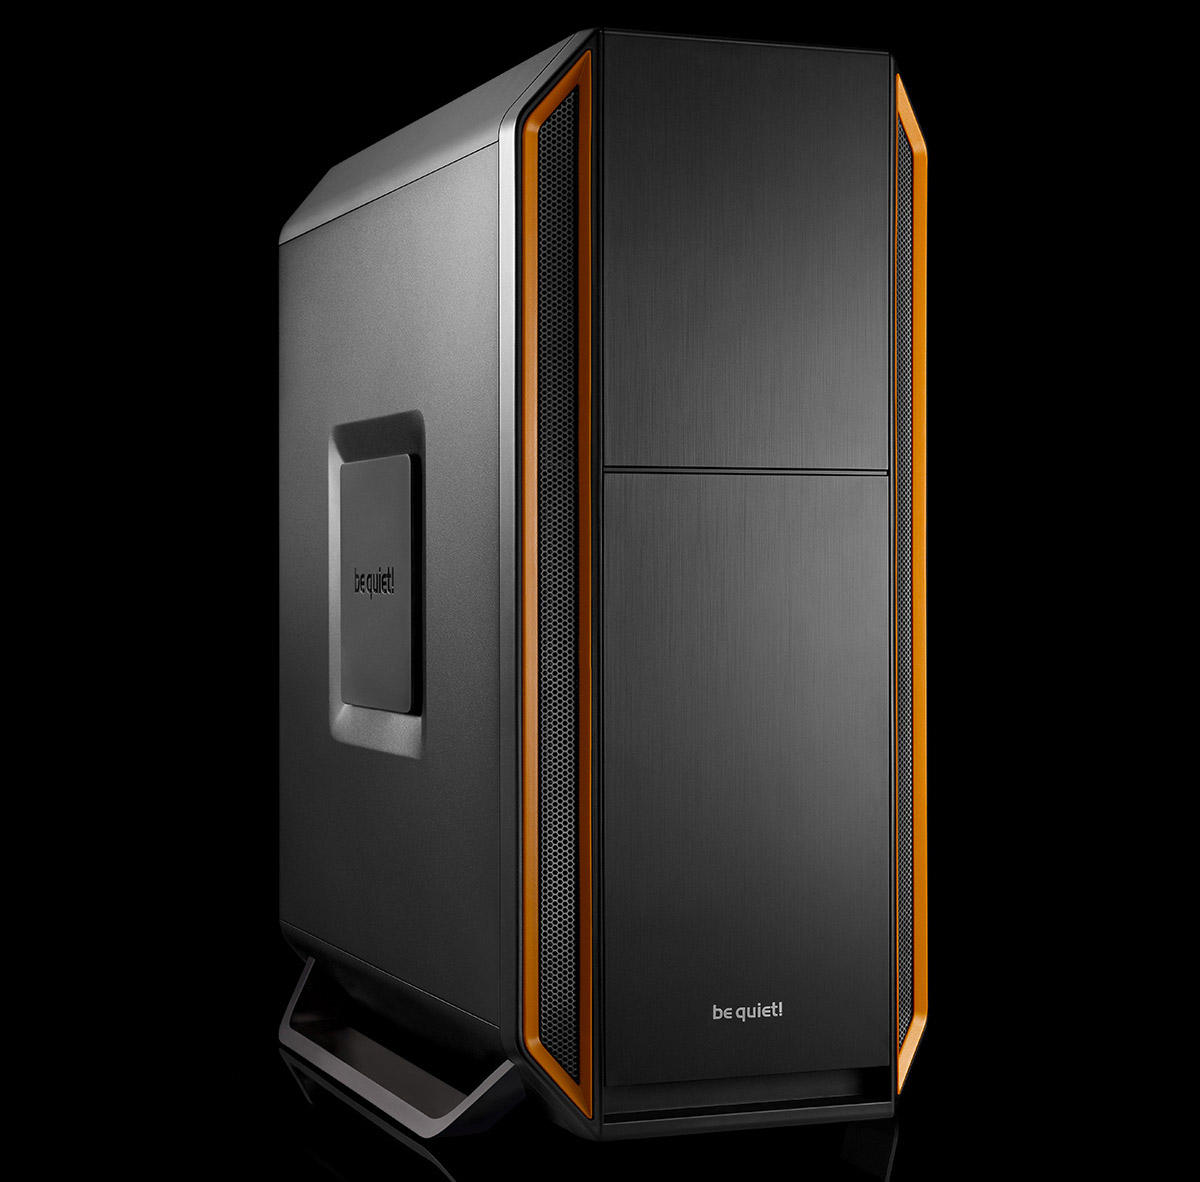 be quiet! Releases Images For The Silent Base 800 PC Case ...